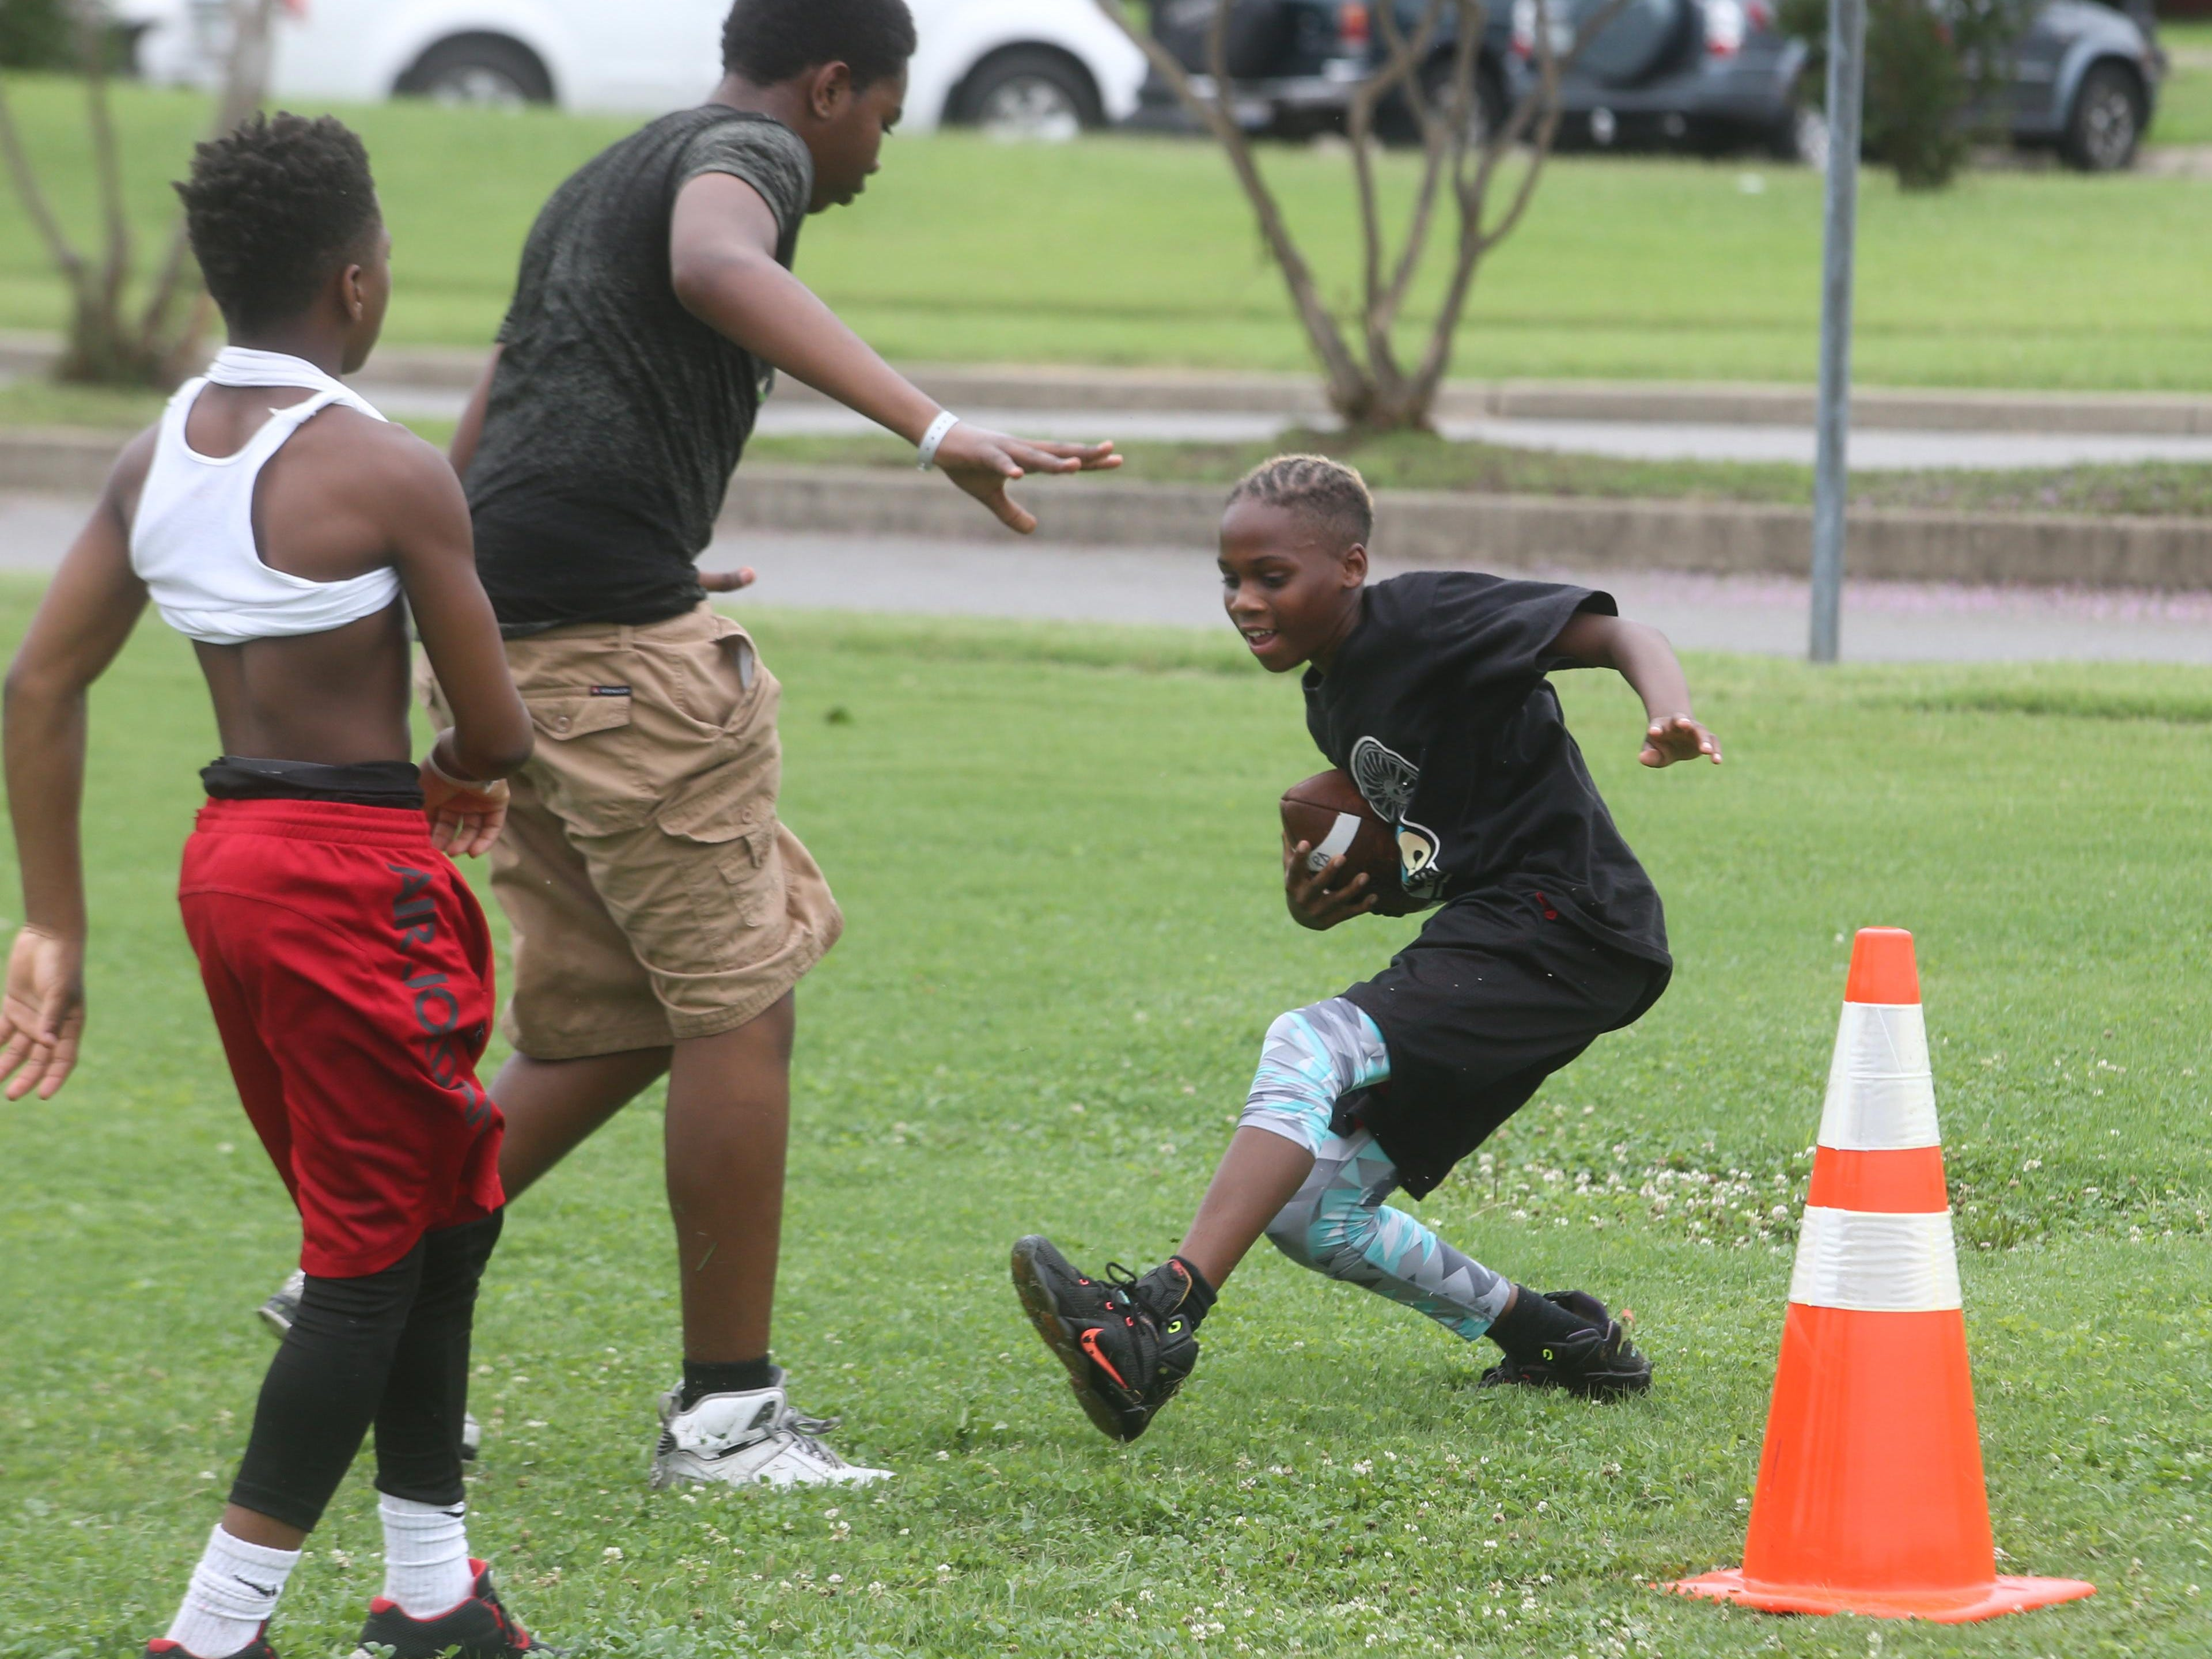 Whitworth Buchanan student Marshawn Scales, 13, tries to miss a defender while going for the end zone.